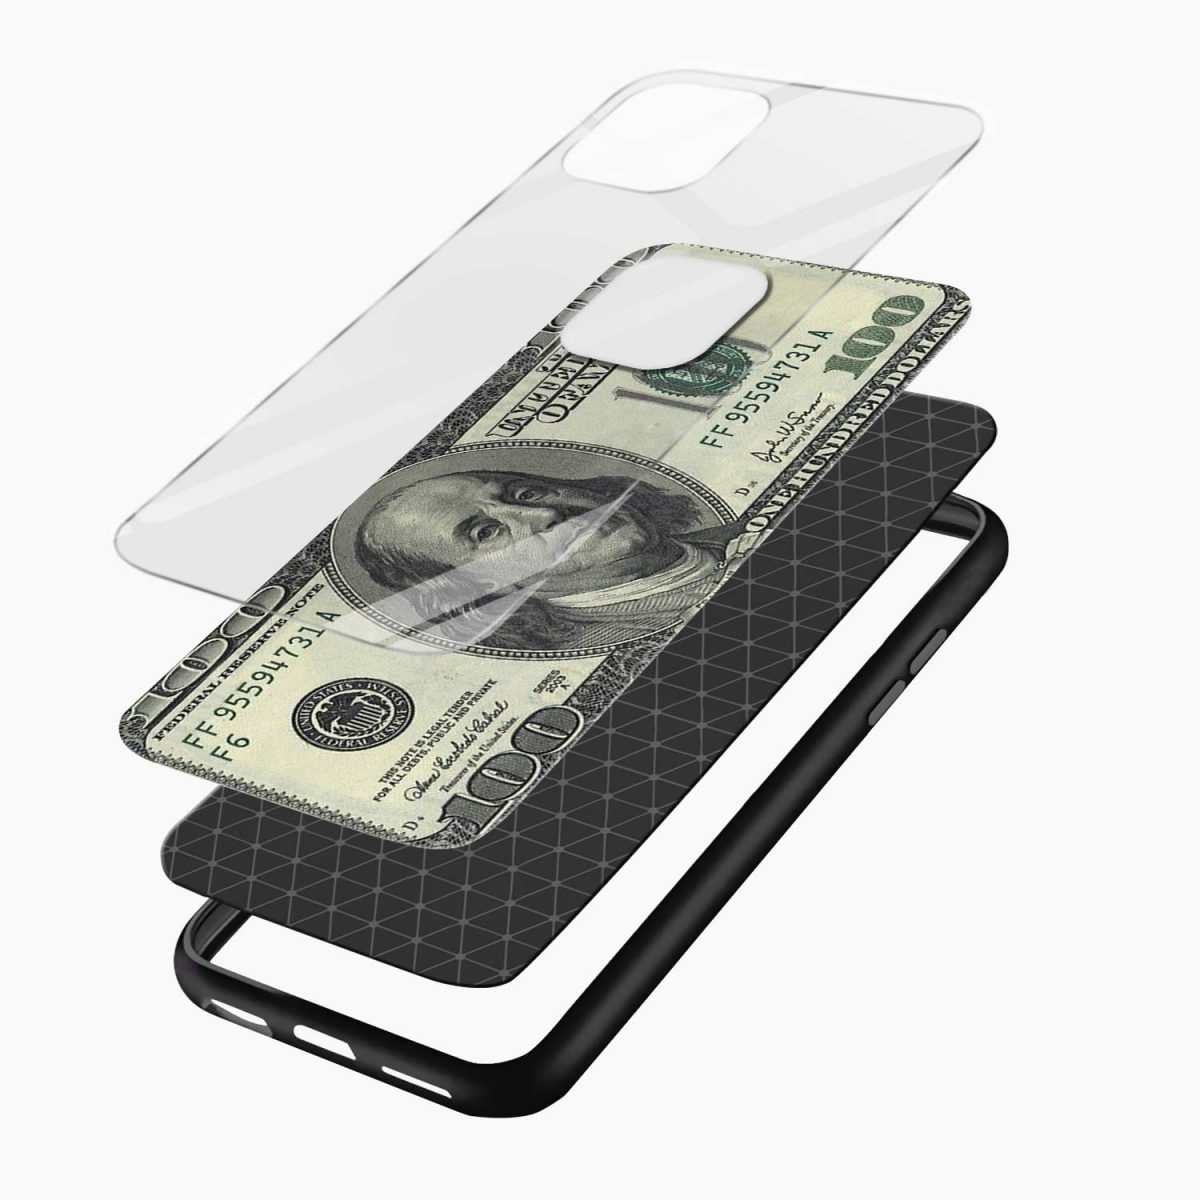 dollar iphone pro back cover layers view